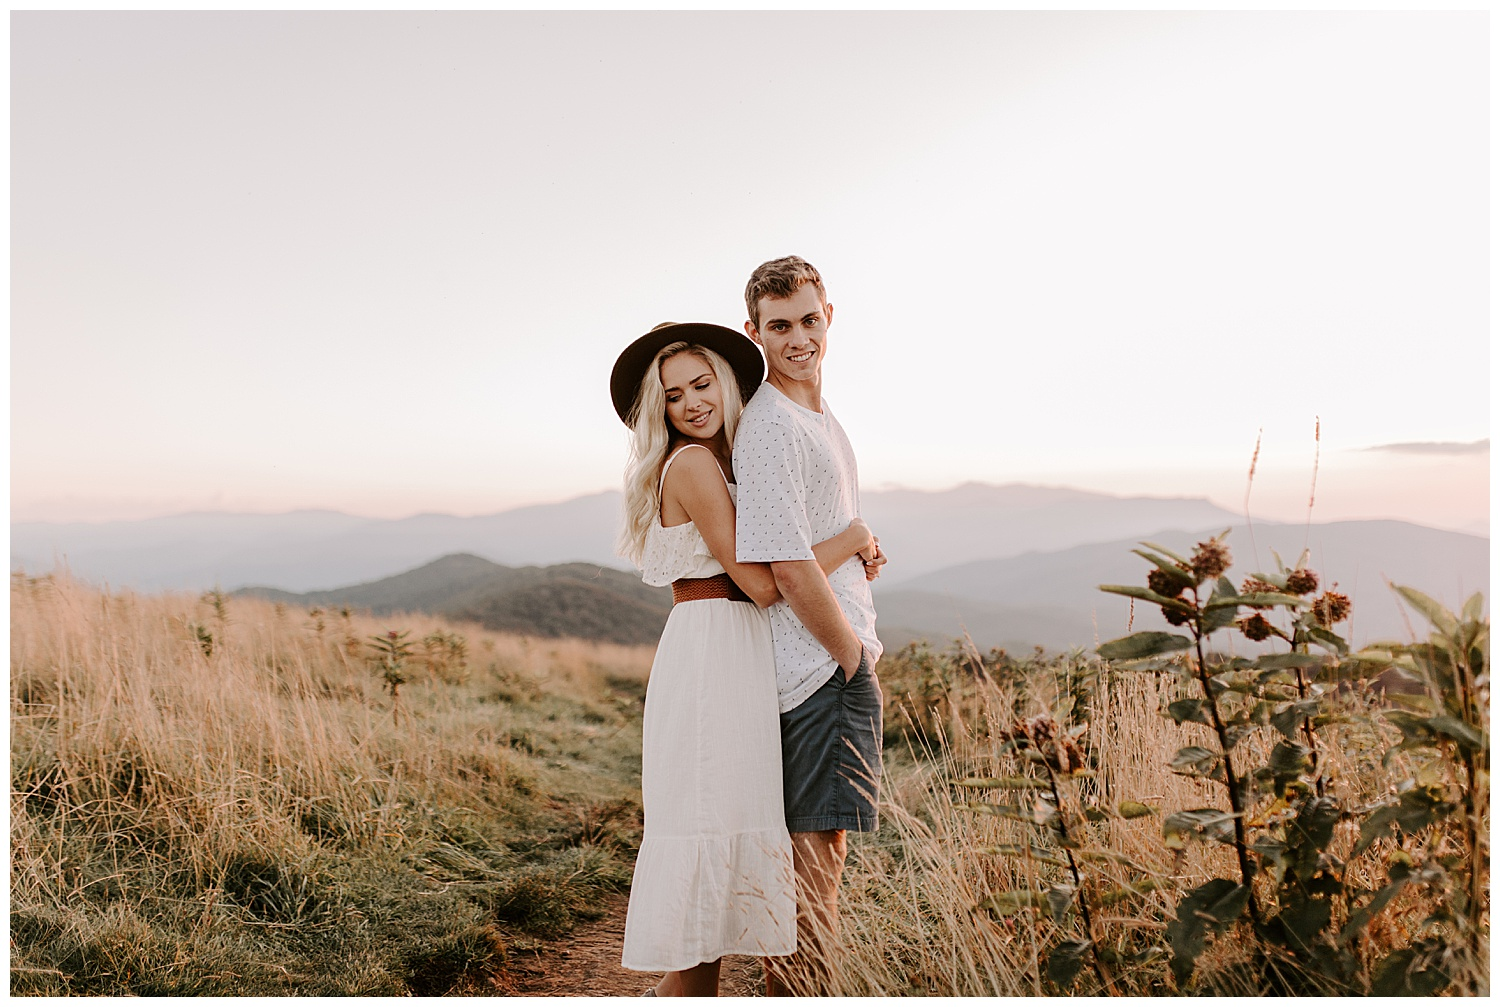 HANNAH_NICK_MAXPATCH_ENGAGEMENT2019-09-05_0033.jpg